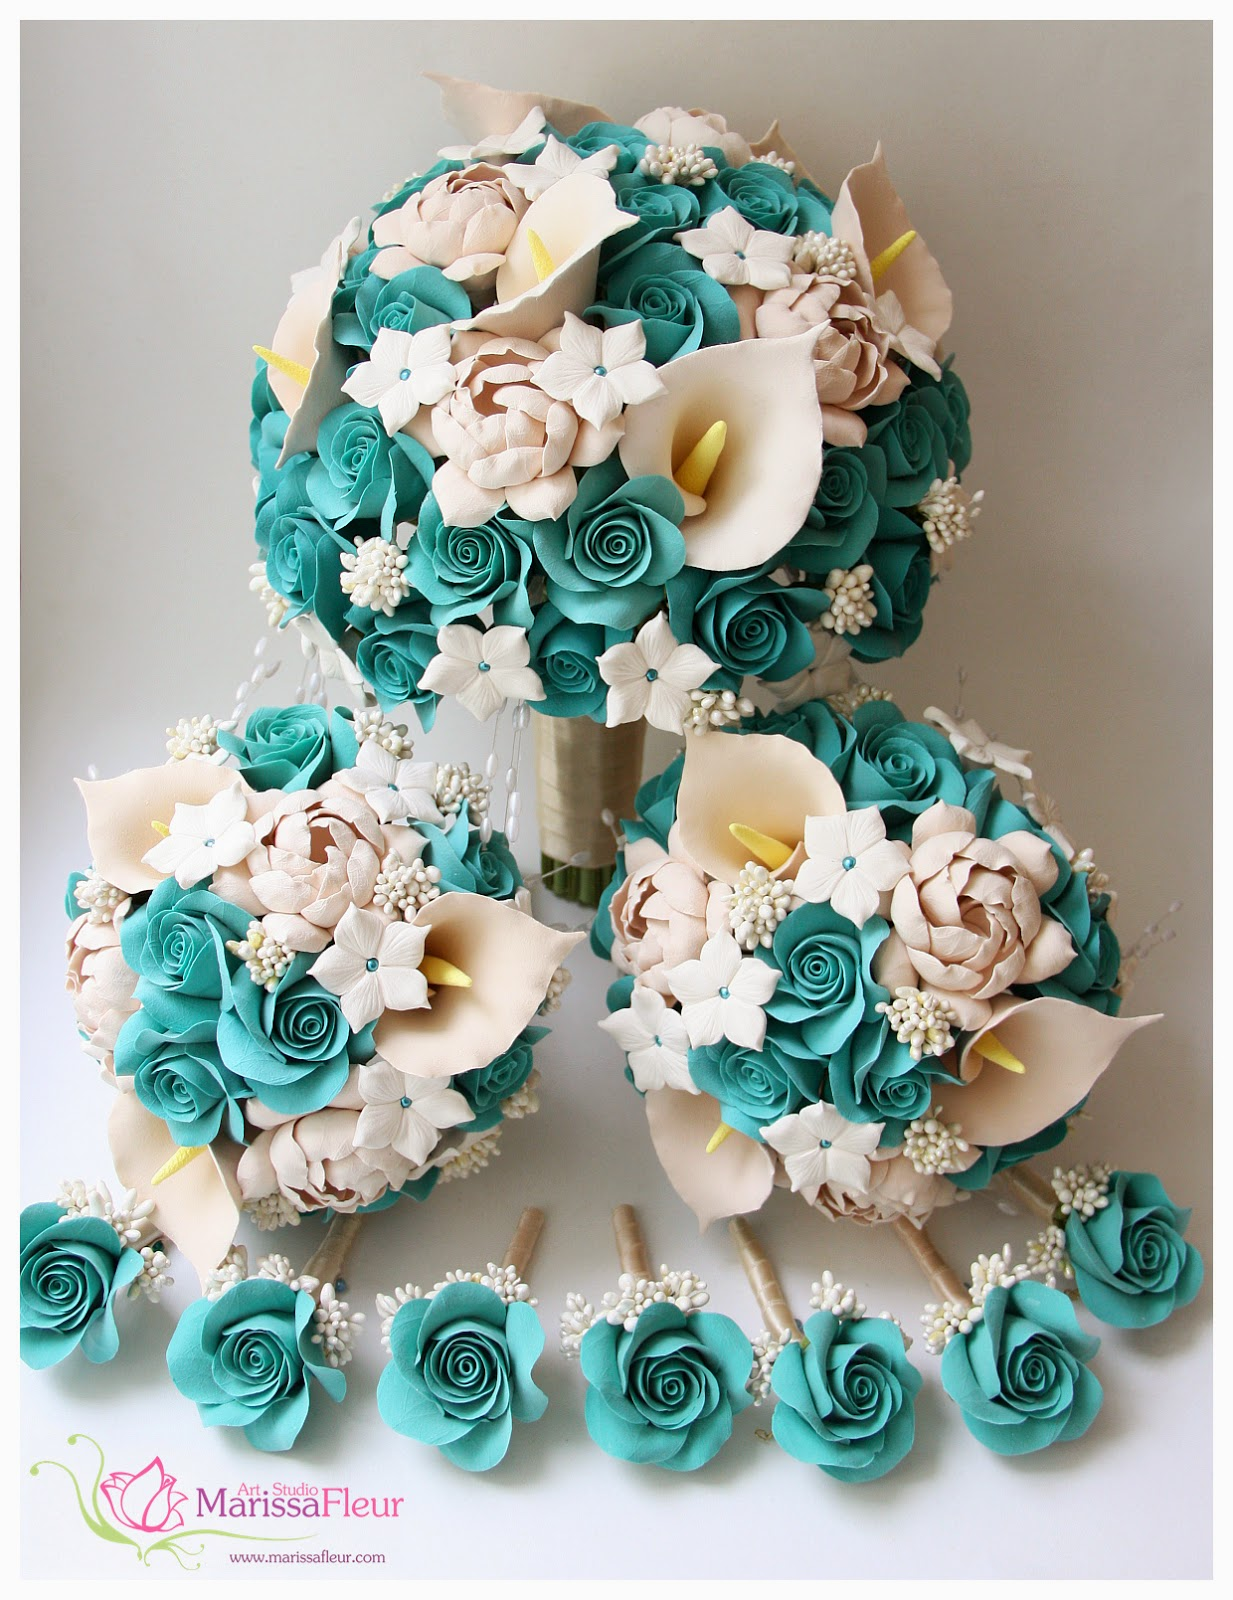 a touch of beauty bridal bouquet with turquoise roses champagne gardenias stephanotis and. Black Bedroom Furniture Sets. Home Design Ideas